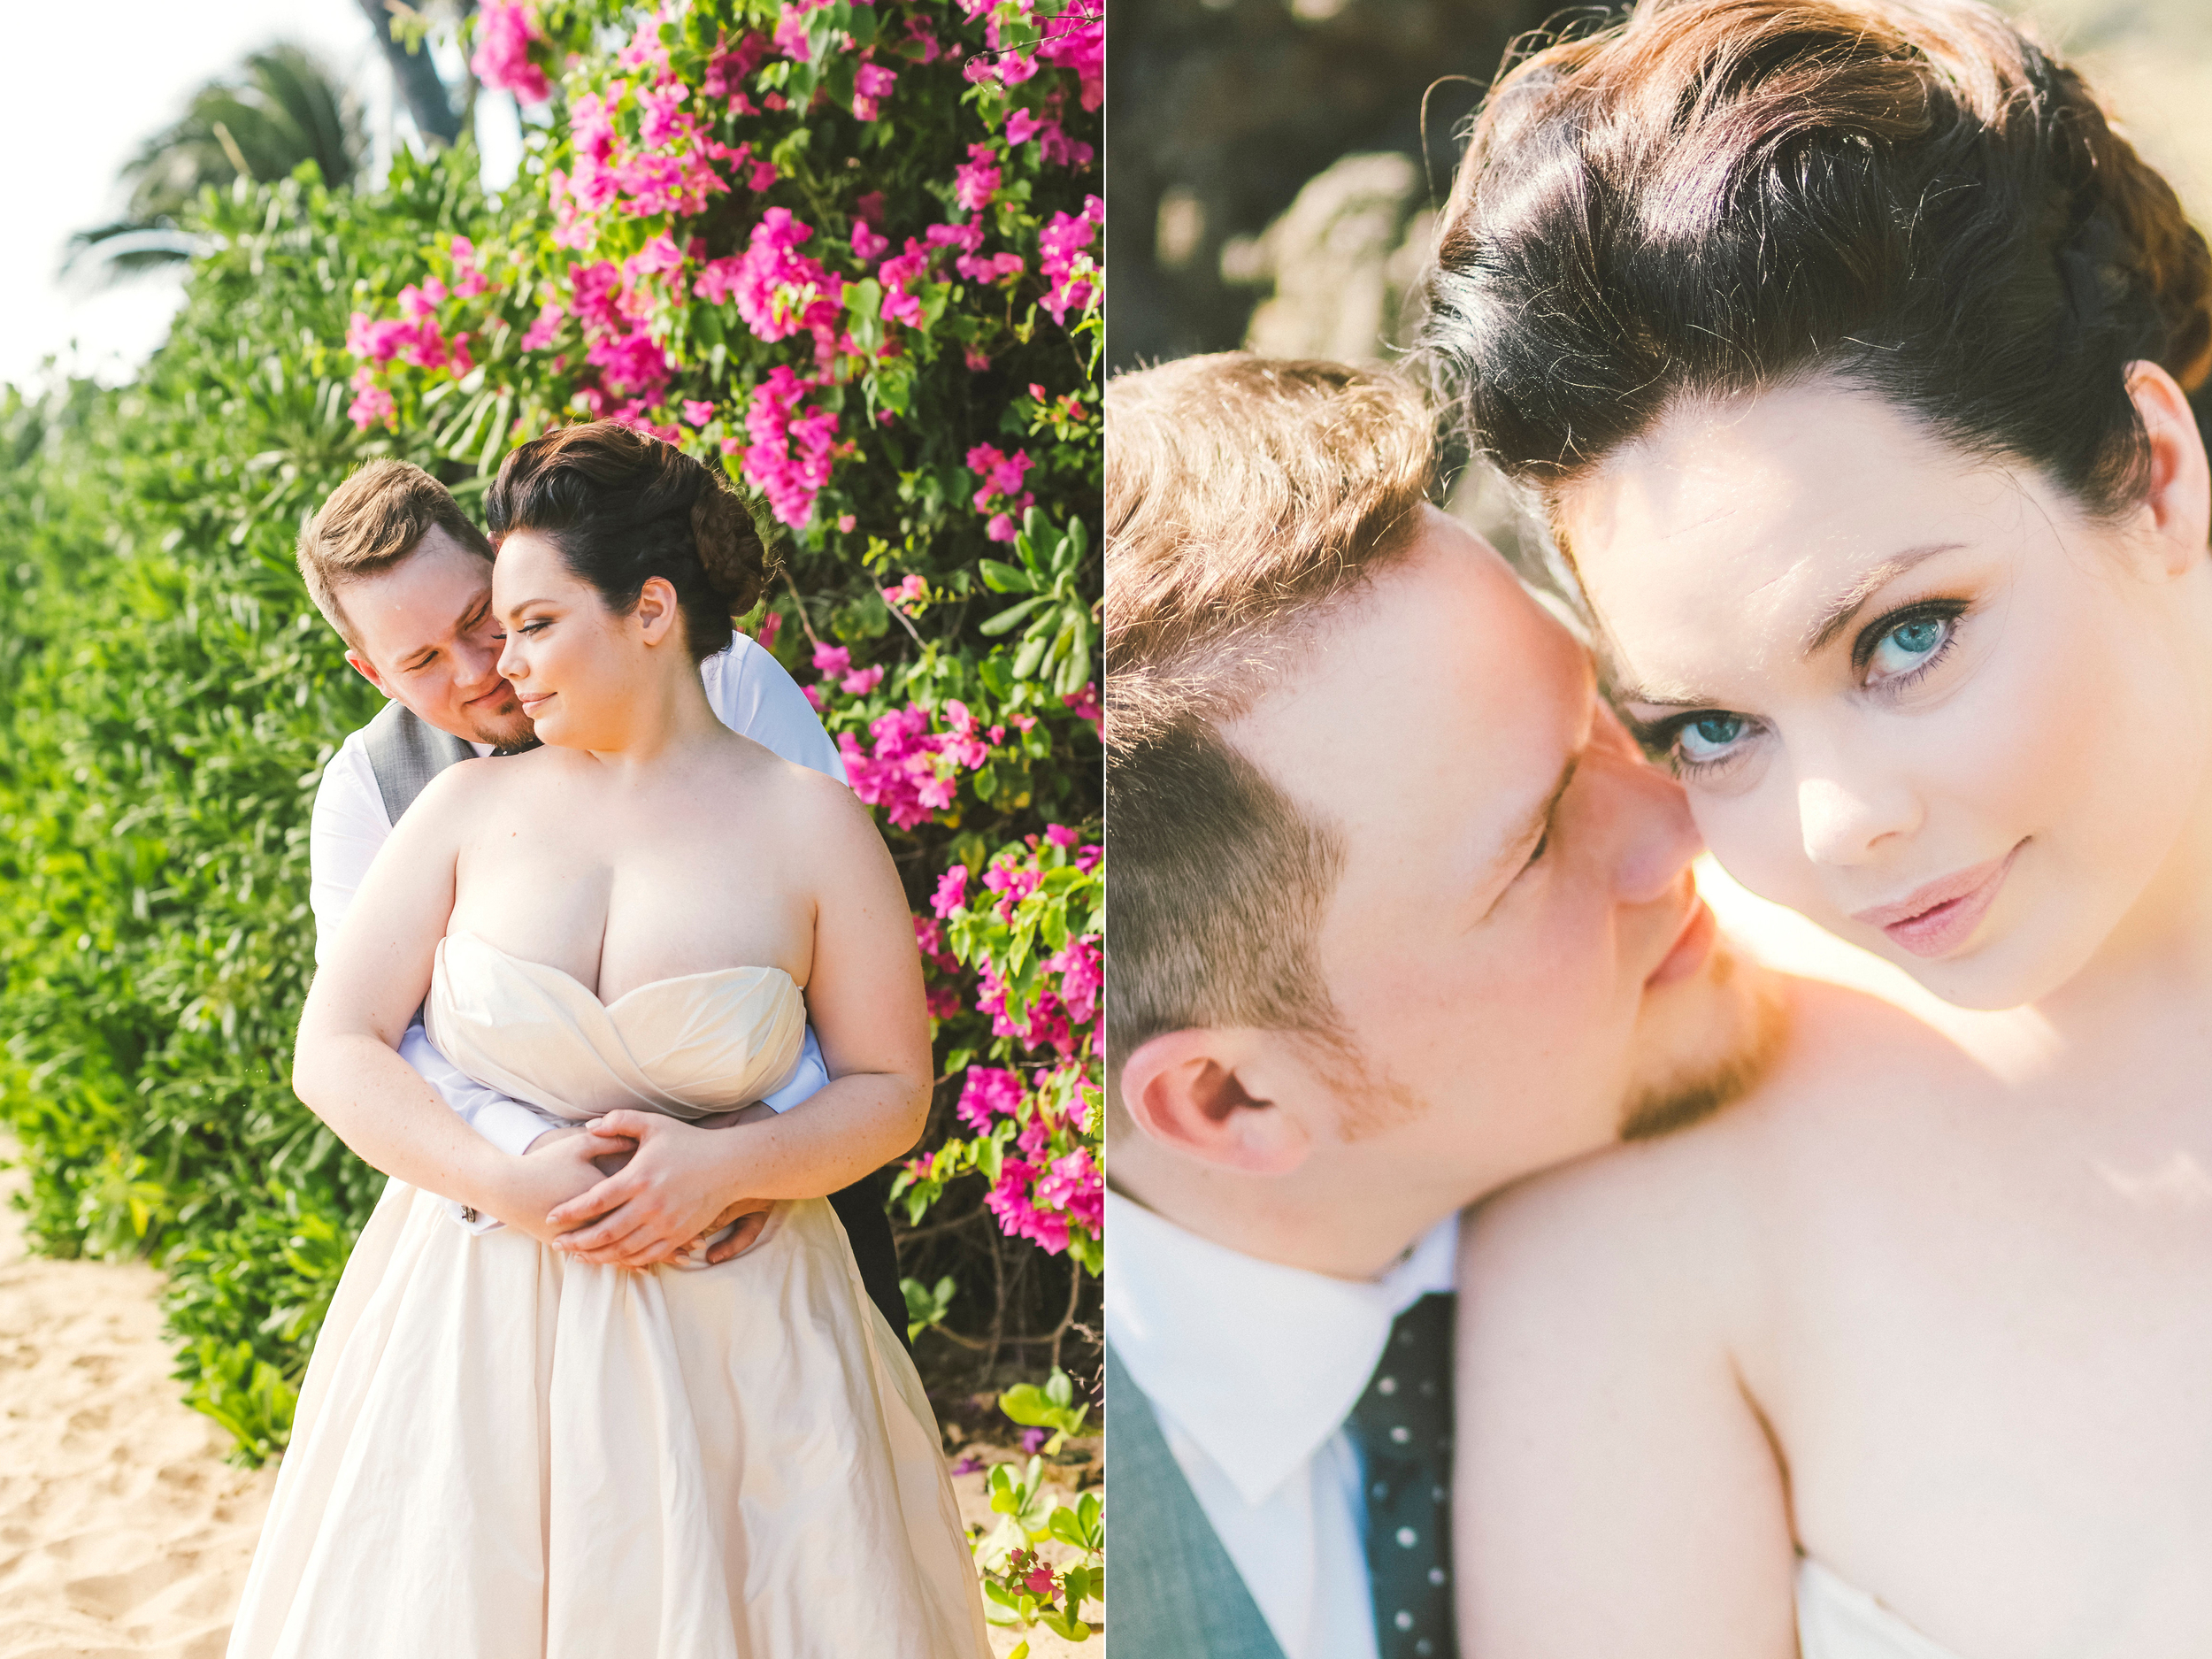 angie-diaz-photography-maui-elopement-44.jpg